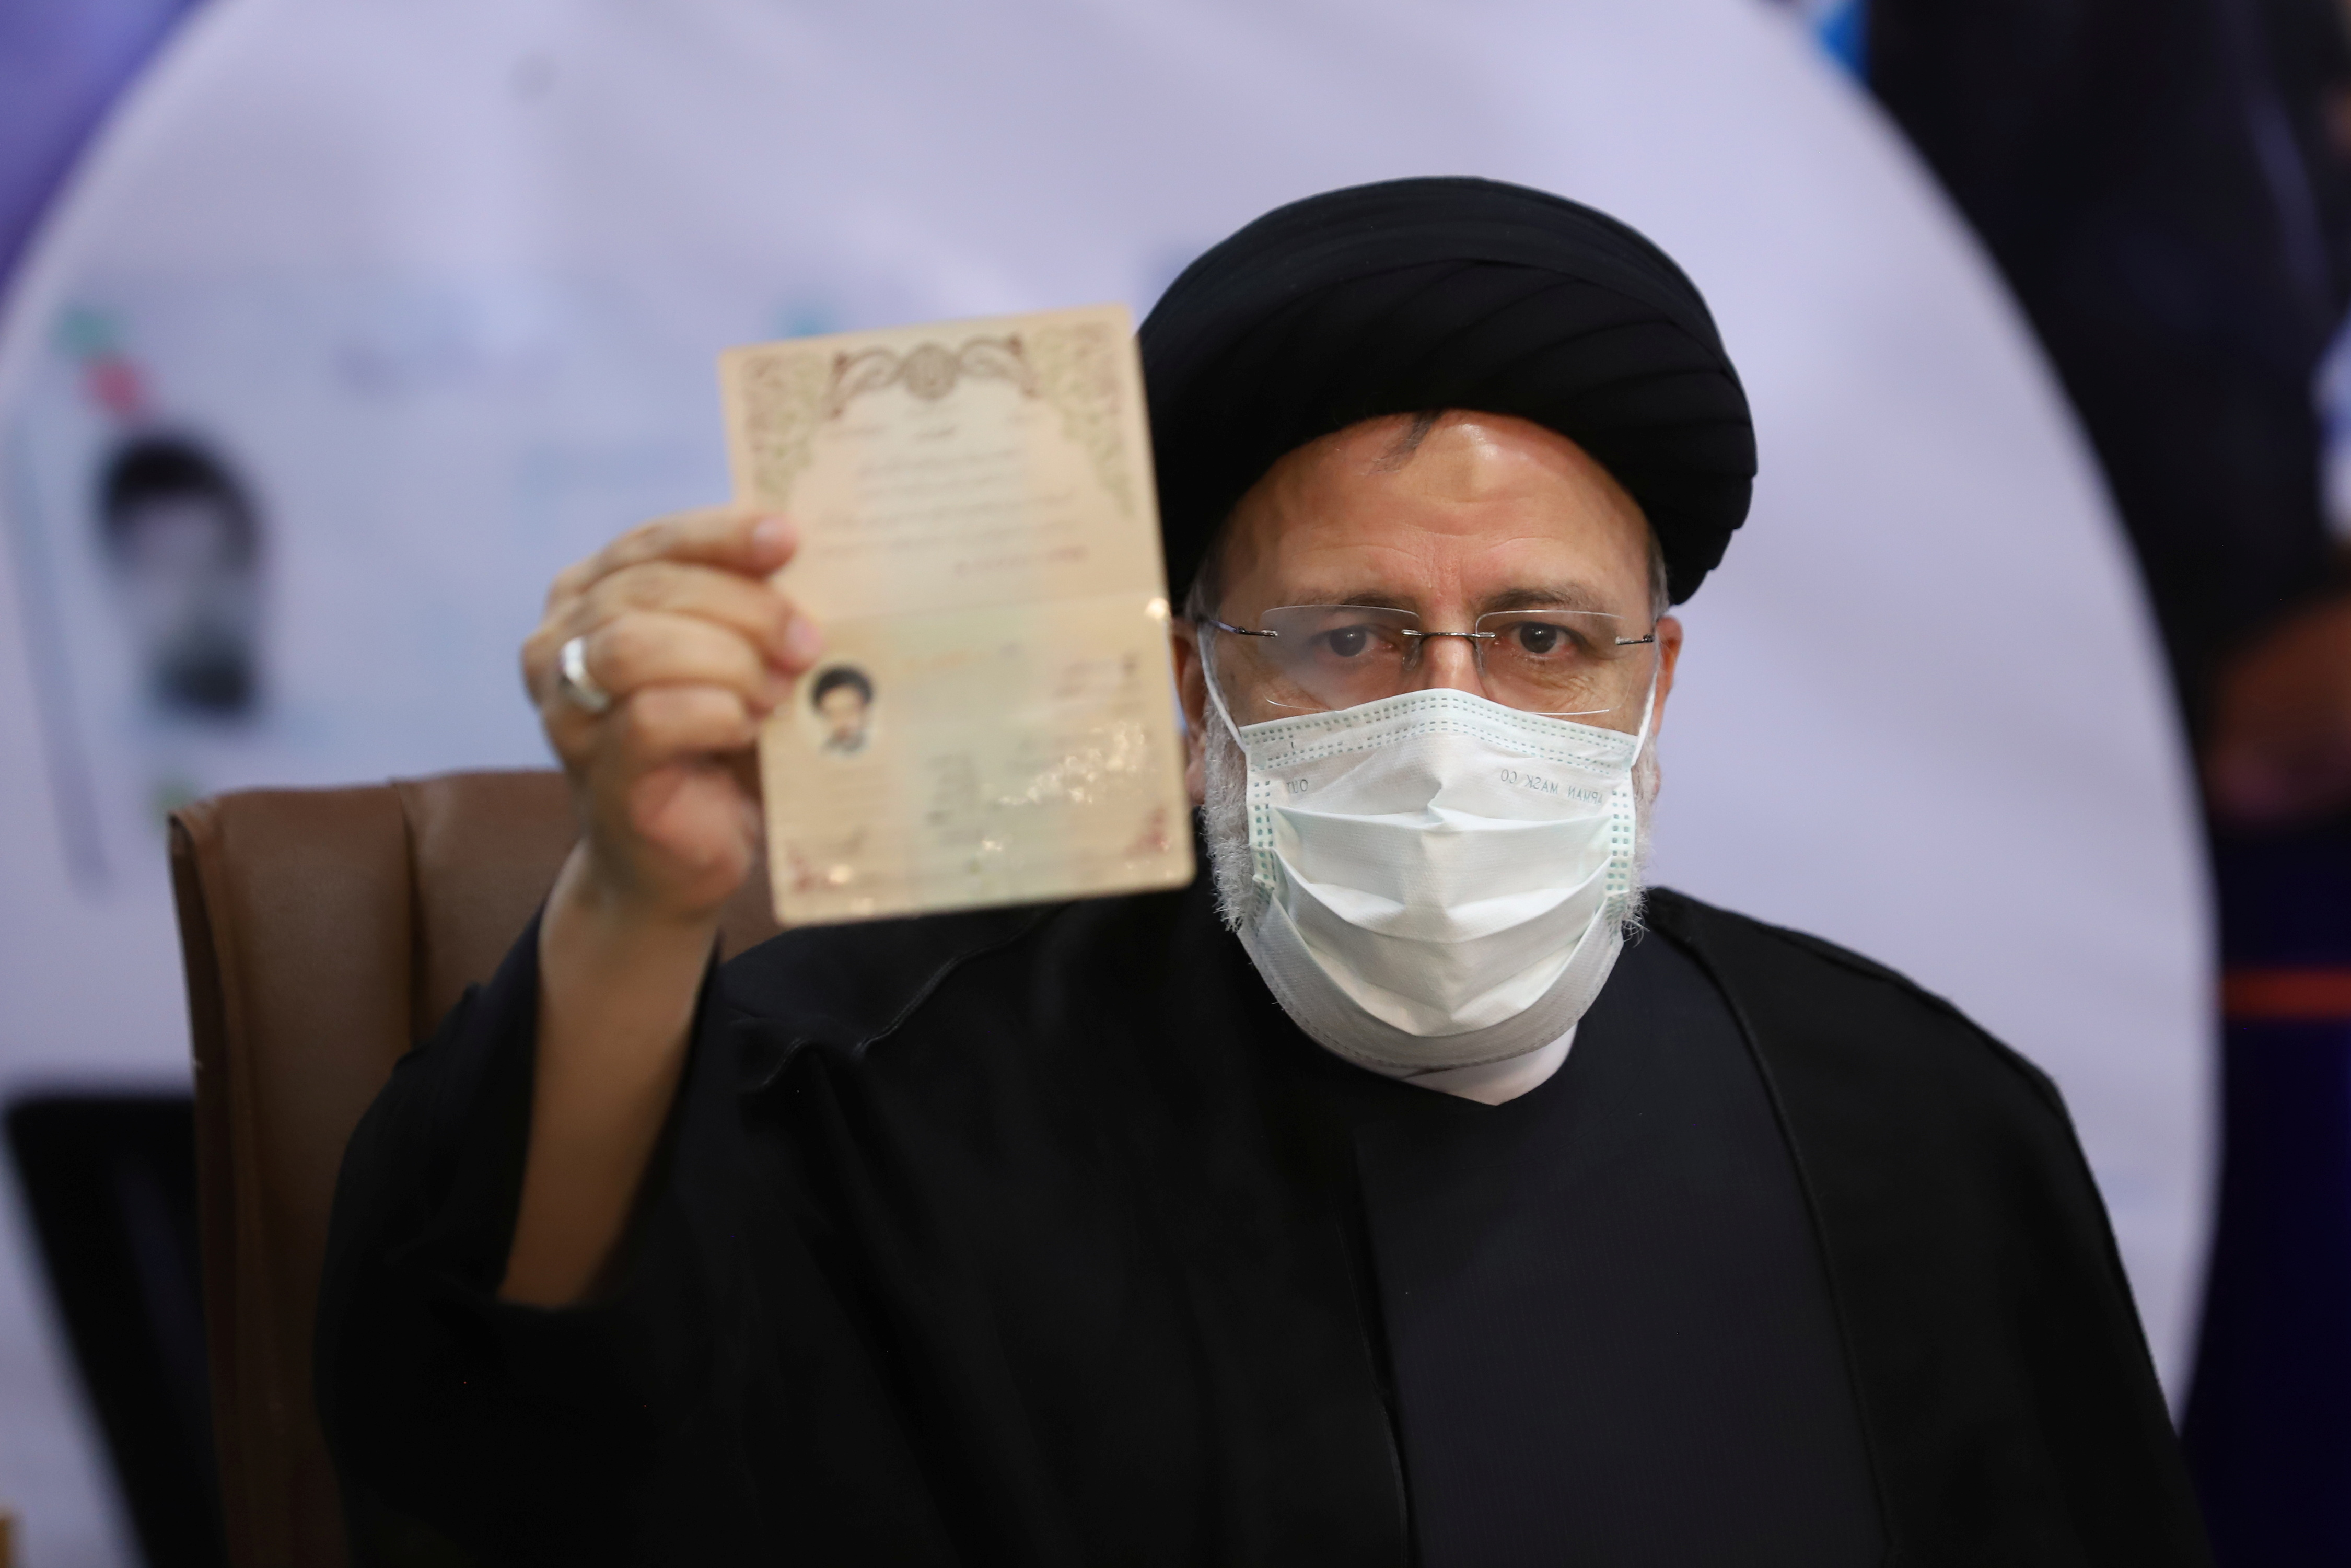 Ebrahim Raisi, Chief Justice of Iran, shows his identification document as he registers as a candidate for the presidential election at the Interior Ministry, in Tehran, Iran May 15, 2021. Majid Asgaripour/ WANA (West Asia News Agency) via REUTERS